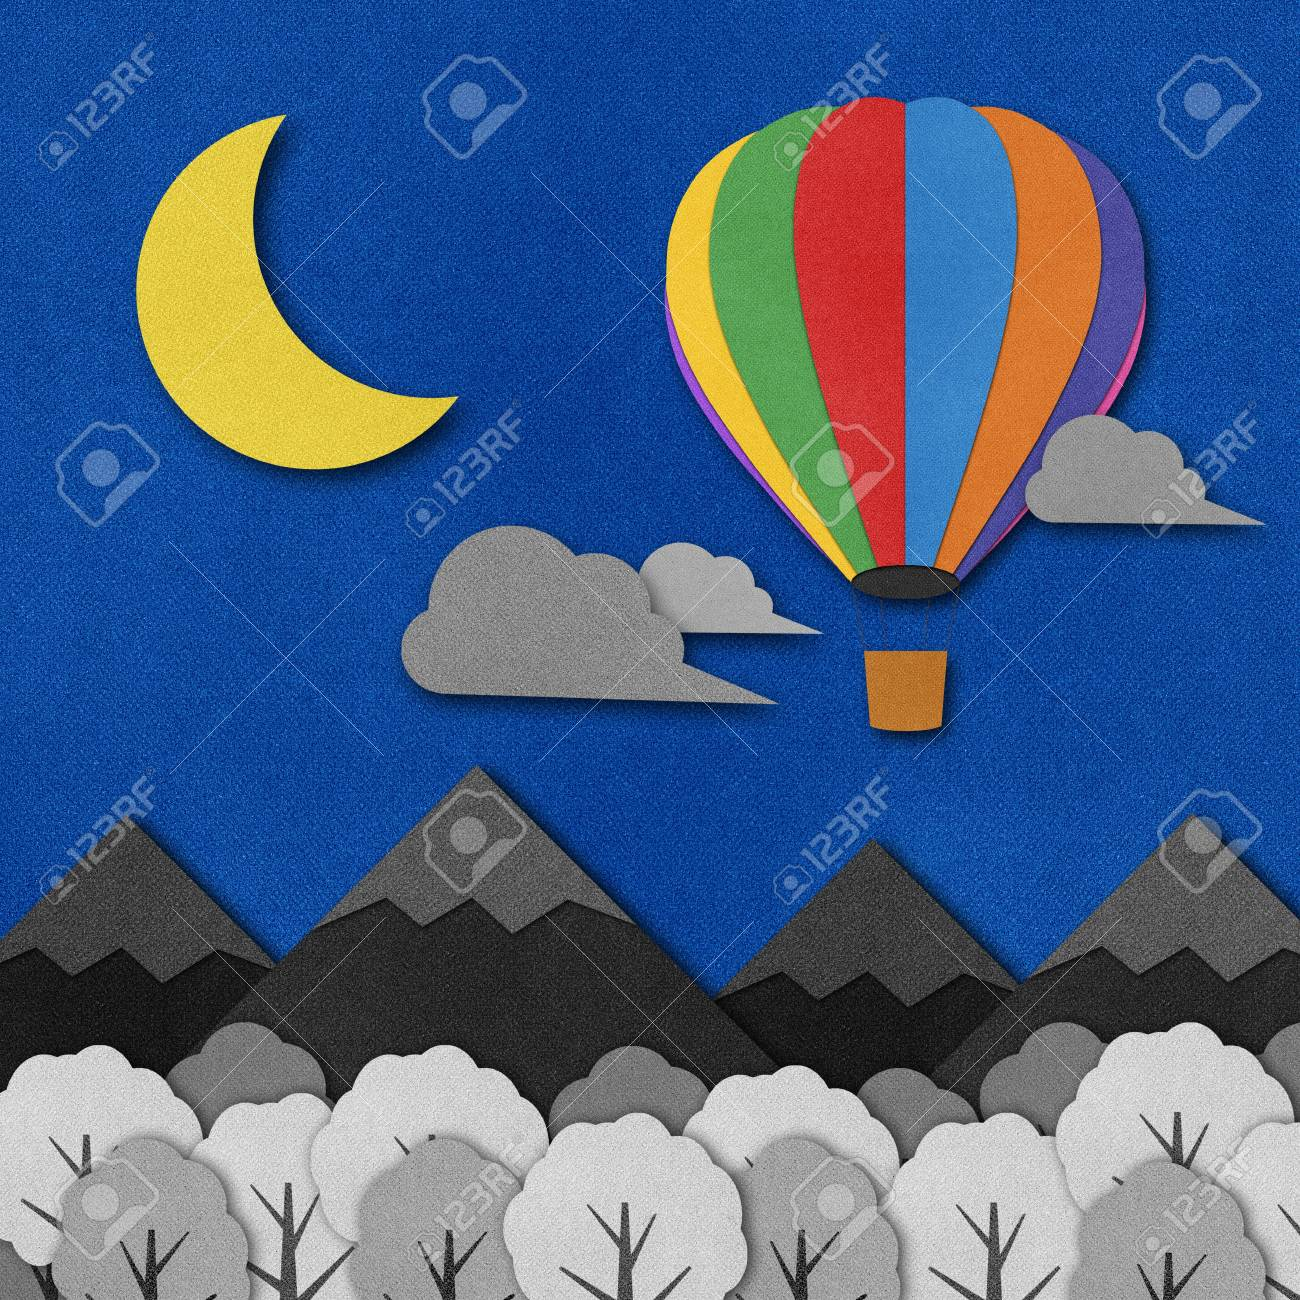 Balloon made from recycled paper background. Stock Photo - 15862271